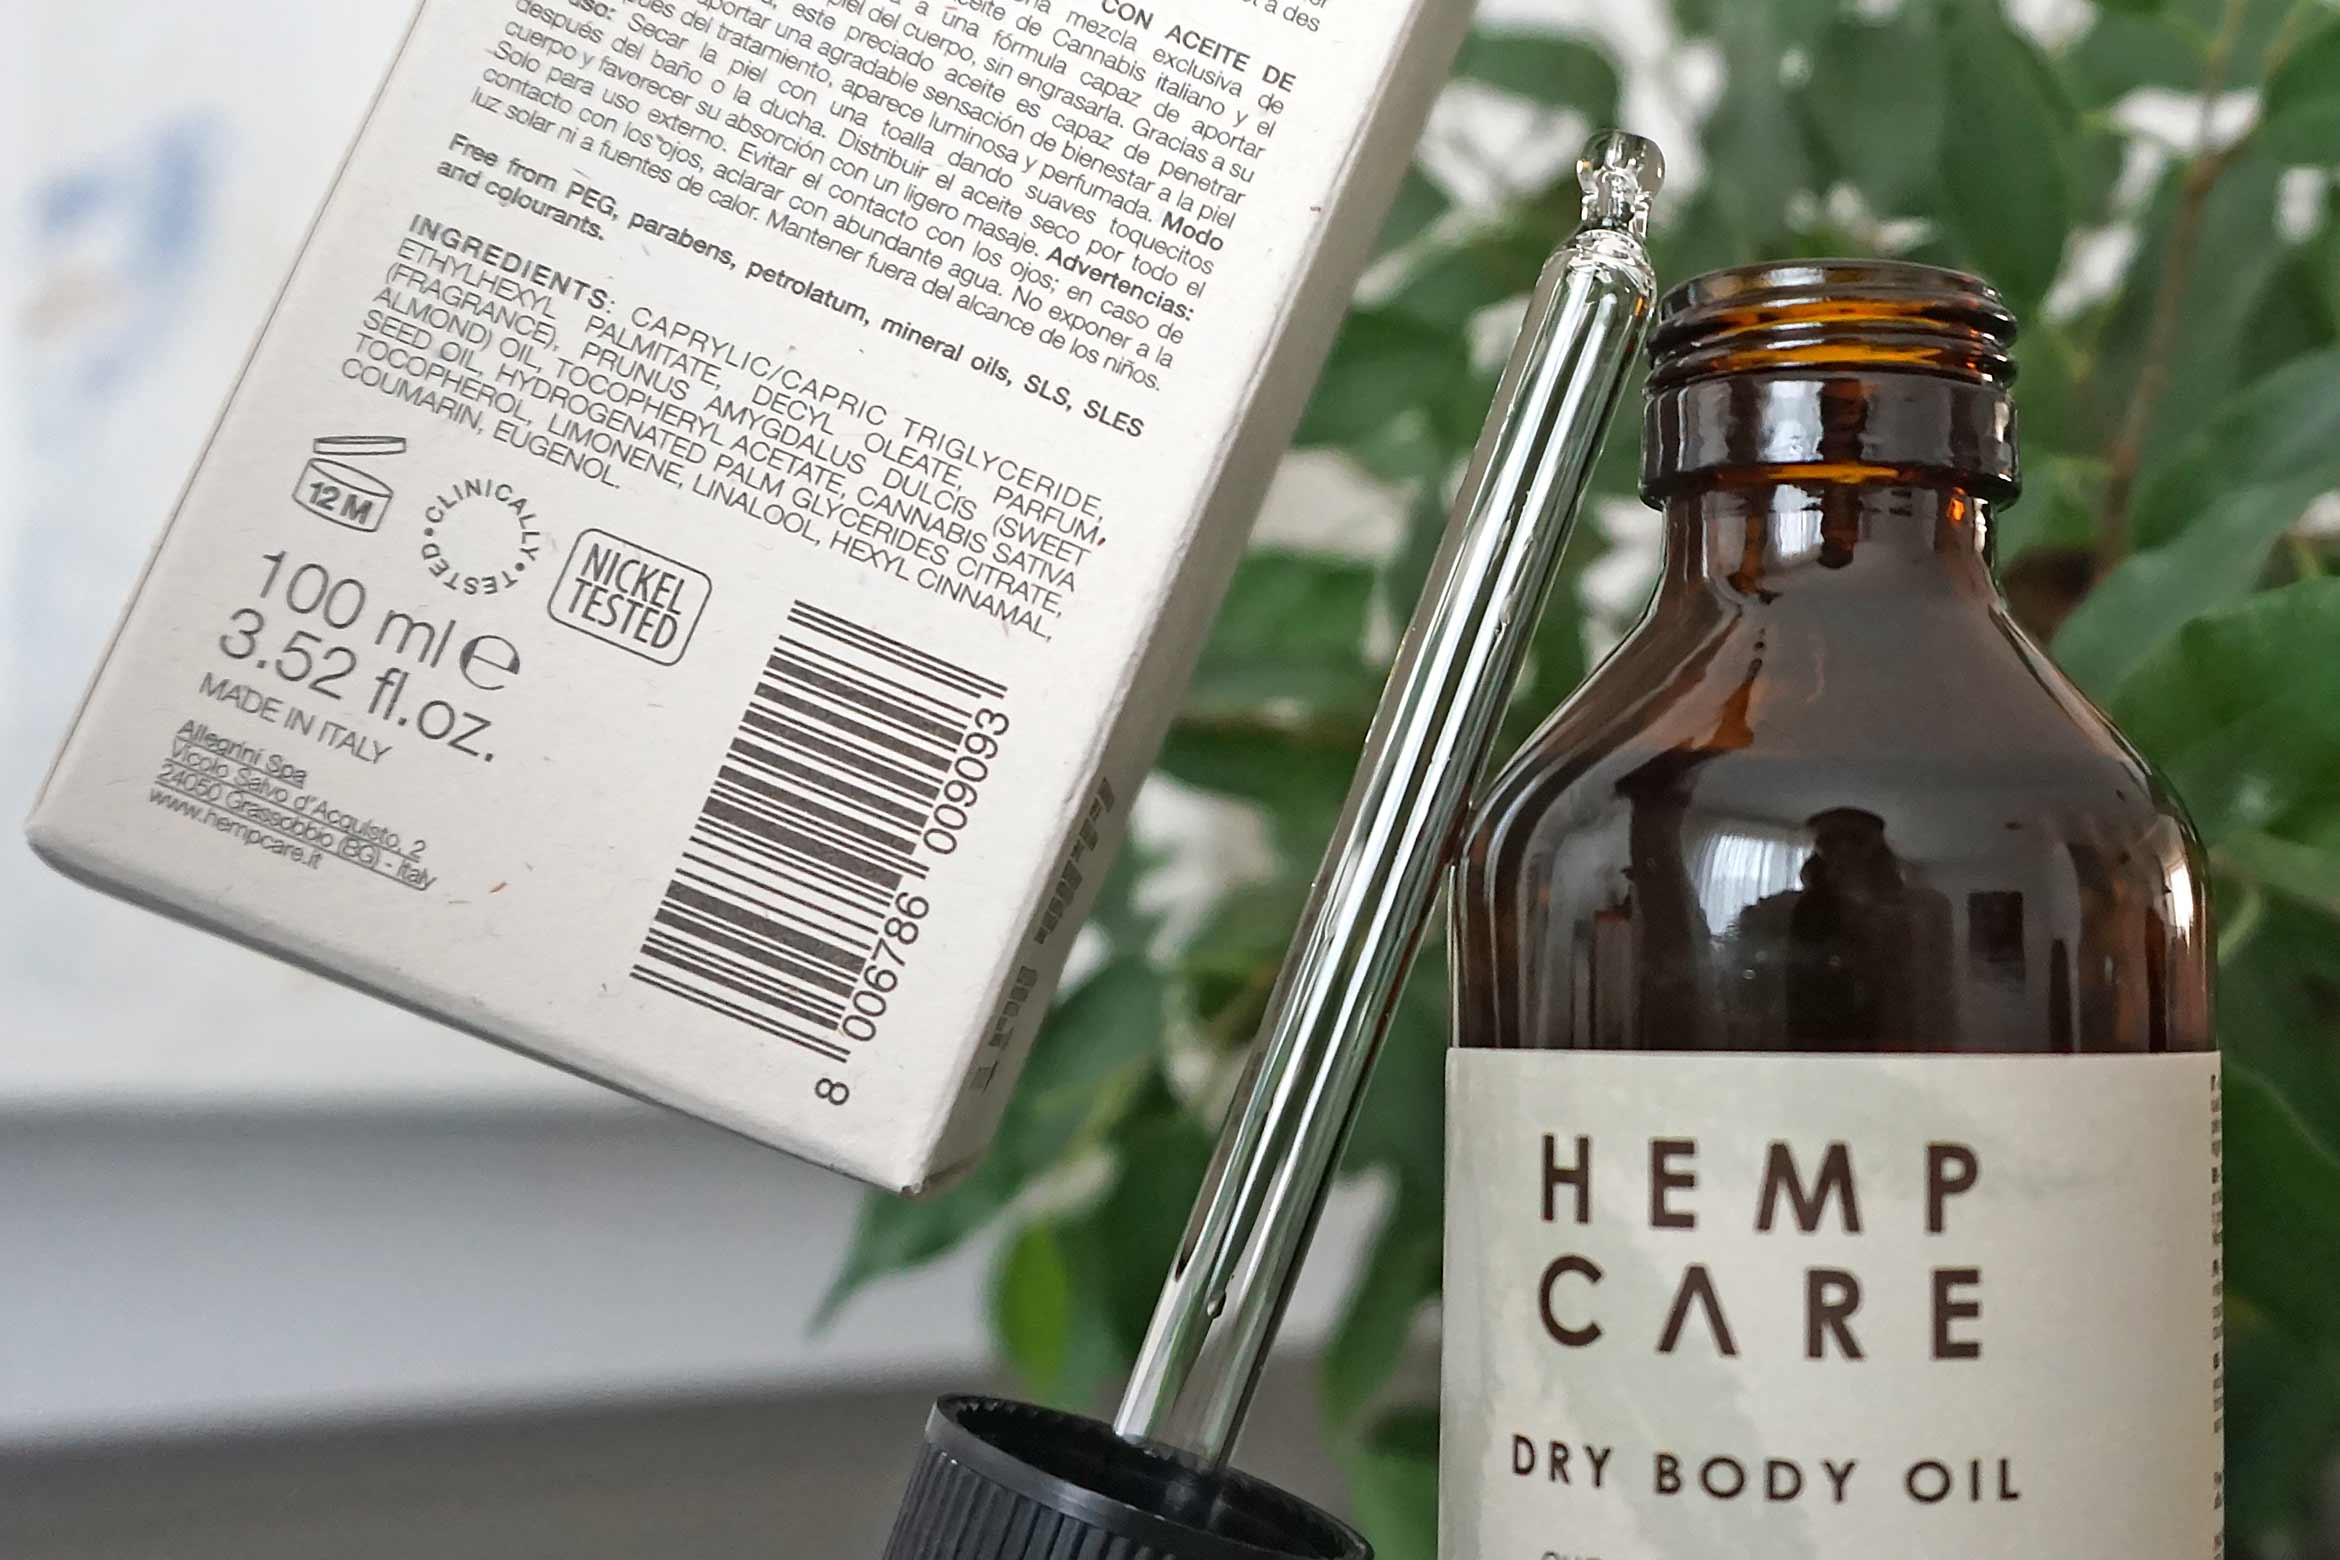 hemp care dry body oil review-1